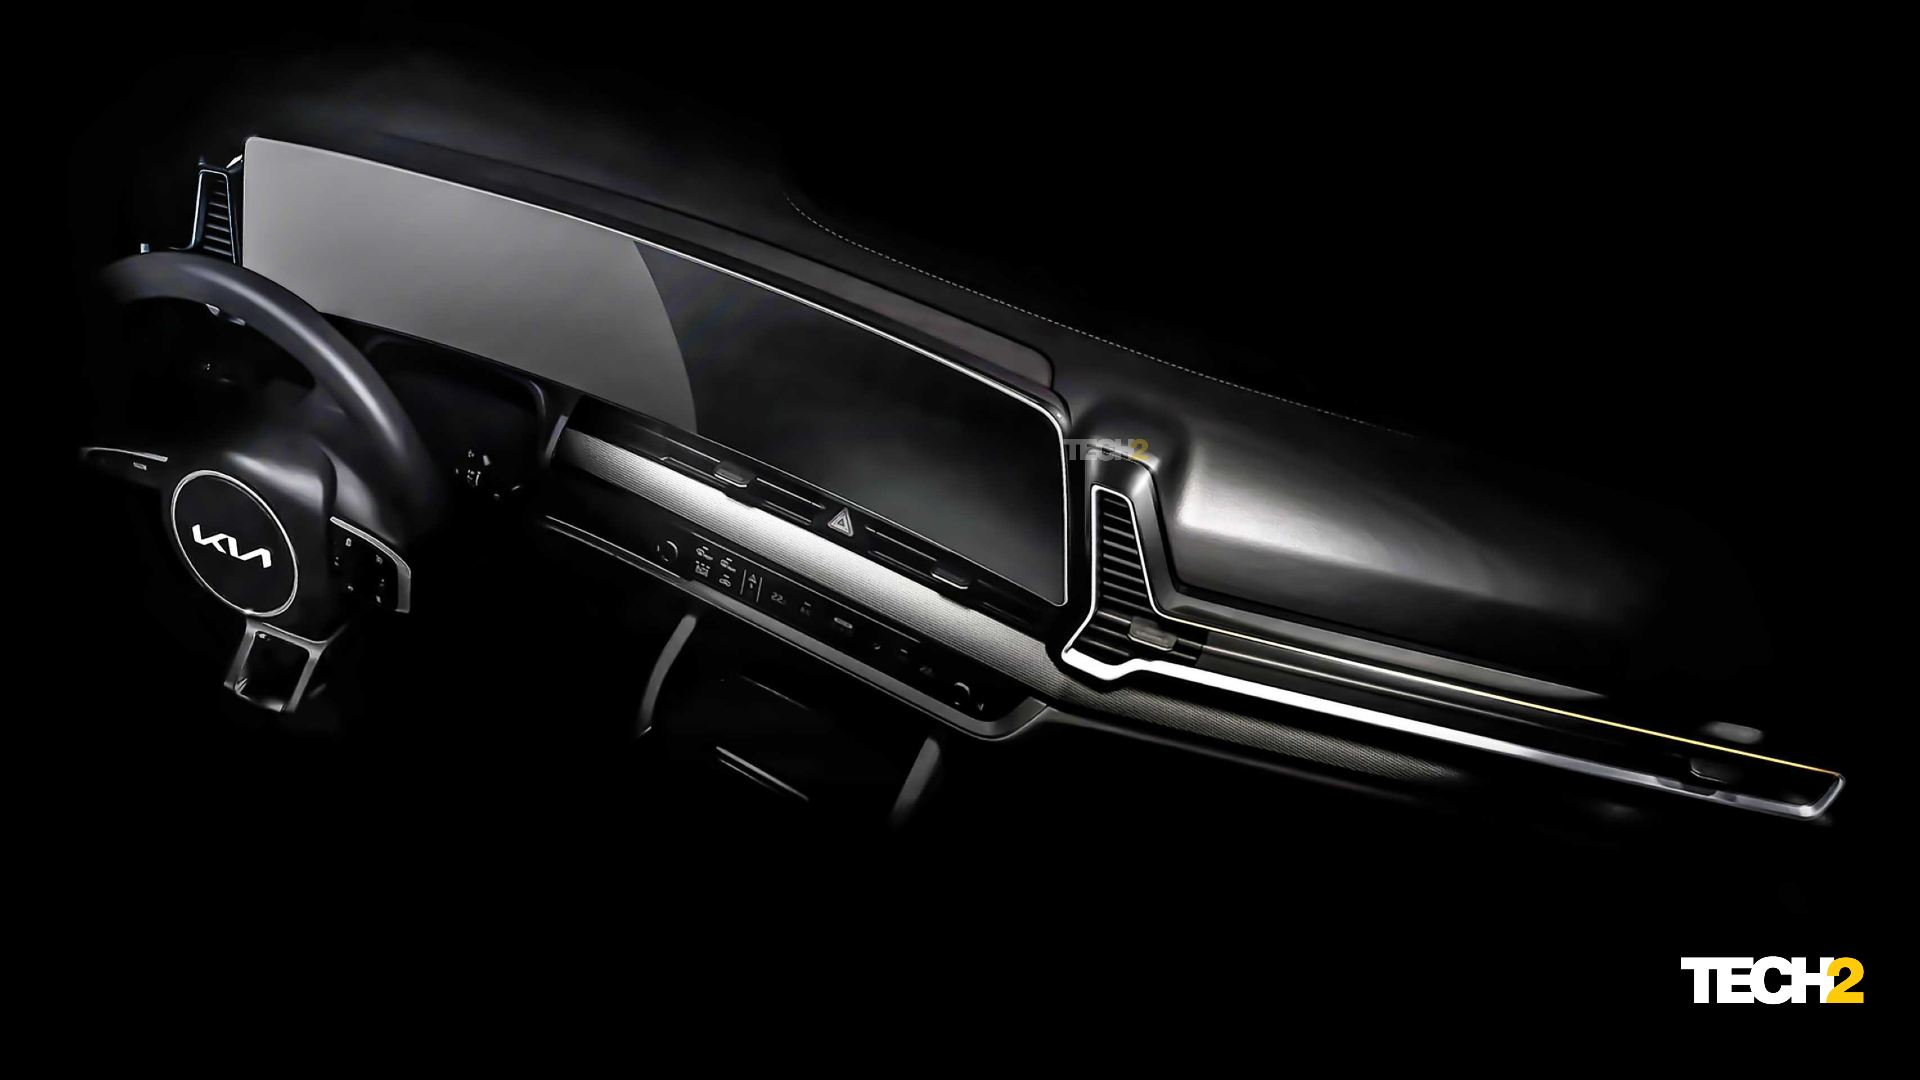 Large, curved display will take centrestage inside the 2022 Kia Sportage. Image: Tech2